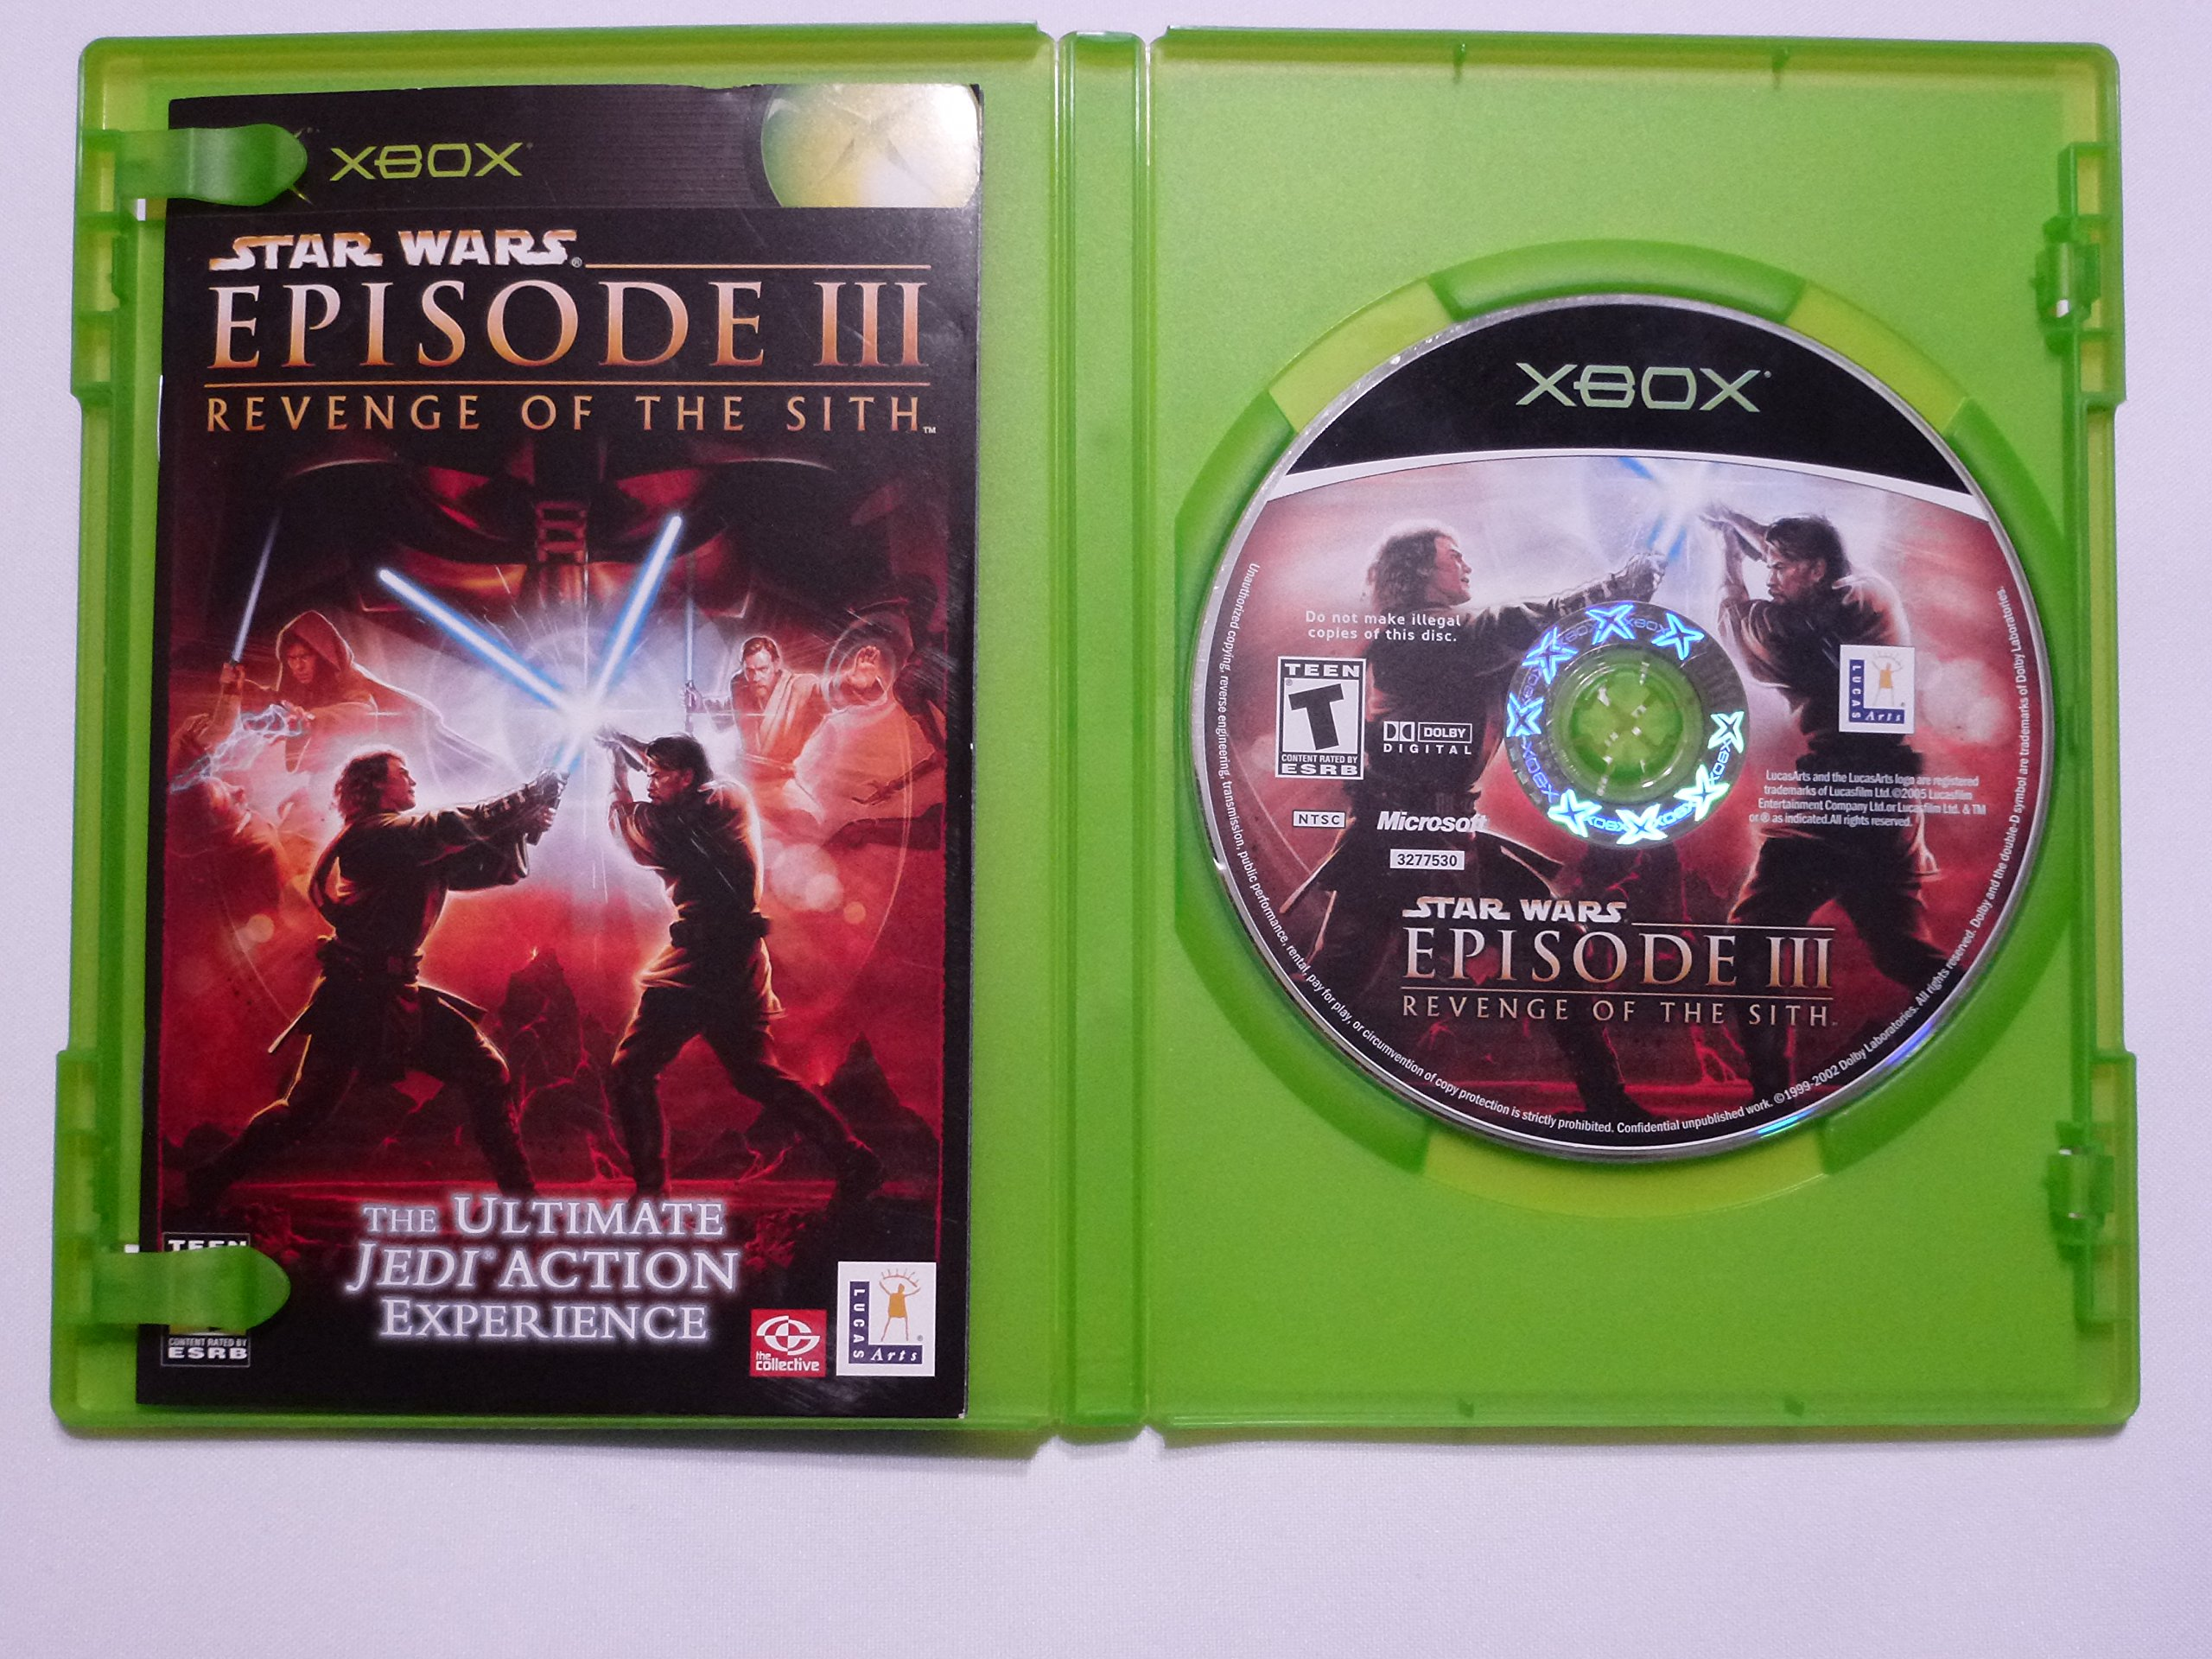 Star Wars Episode Iii Revenge Of The Sith Xbox Buy Online In Brunei Lucasarts Products In Brunei See Prices Reviews And Free Delivery Over Bnd100 Desertcart